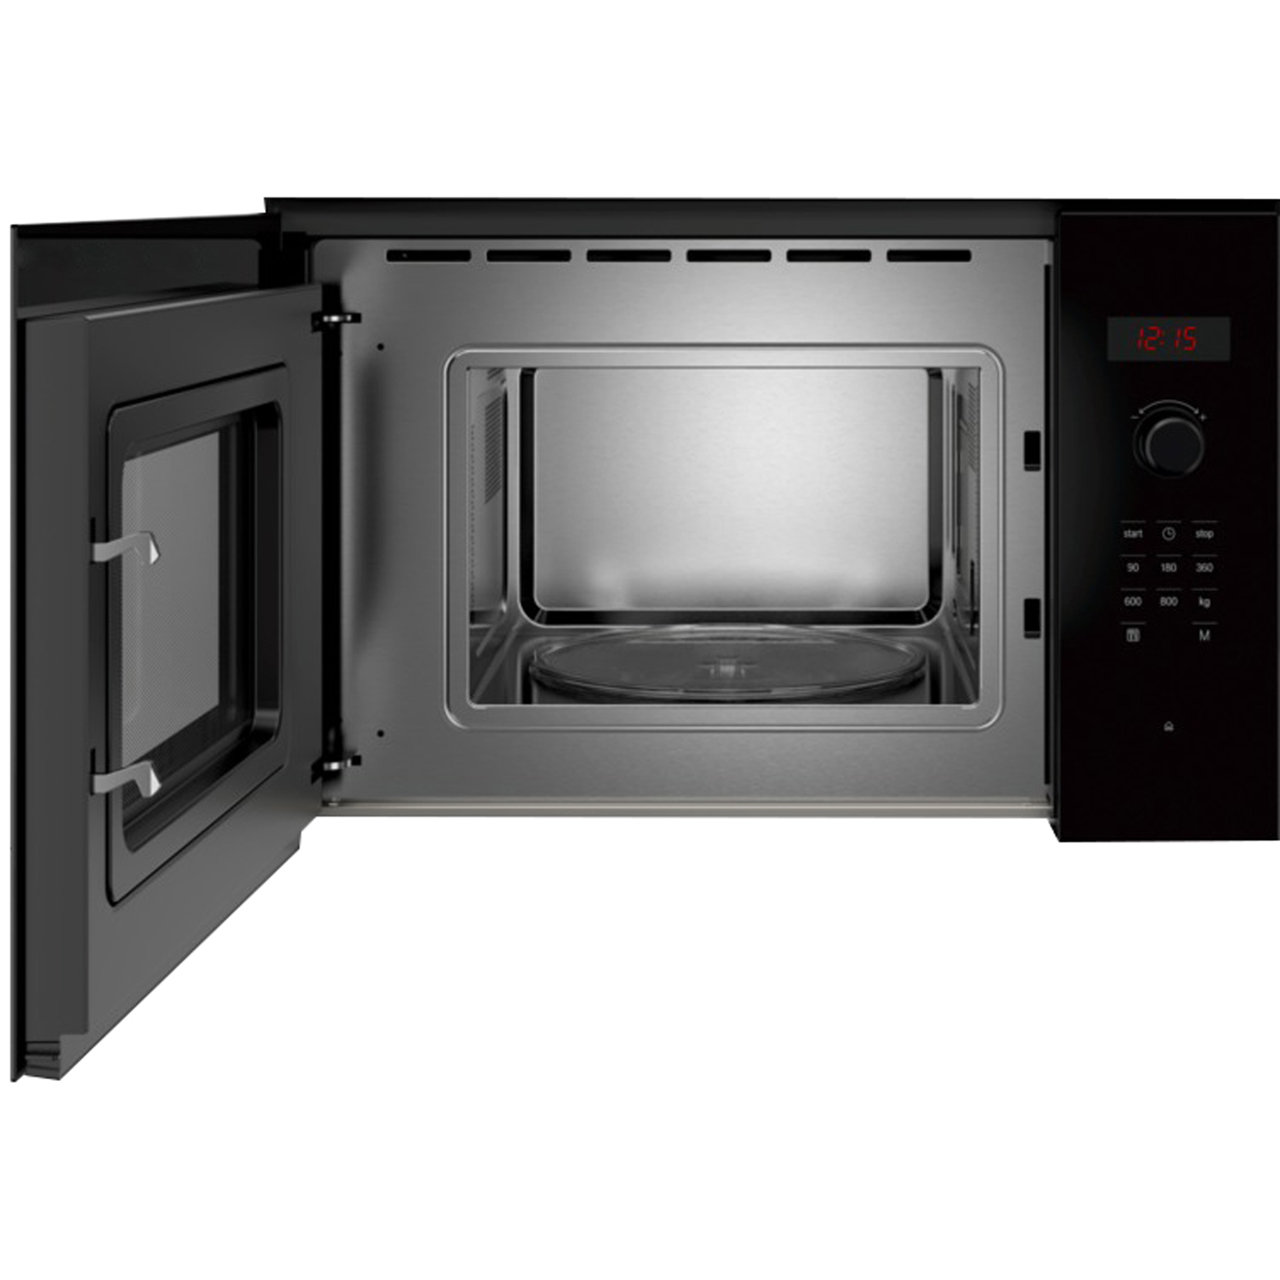 Bosch Microwave Bosch Serie 4 Bfl523mb0b Built In Microwave Black